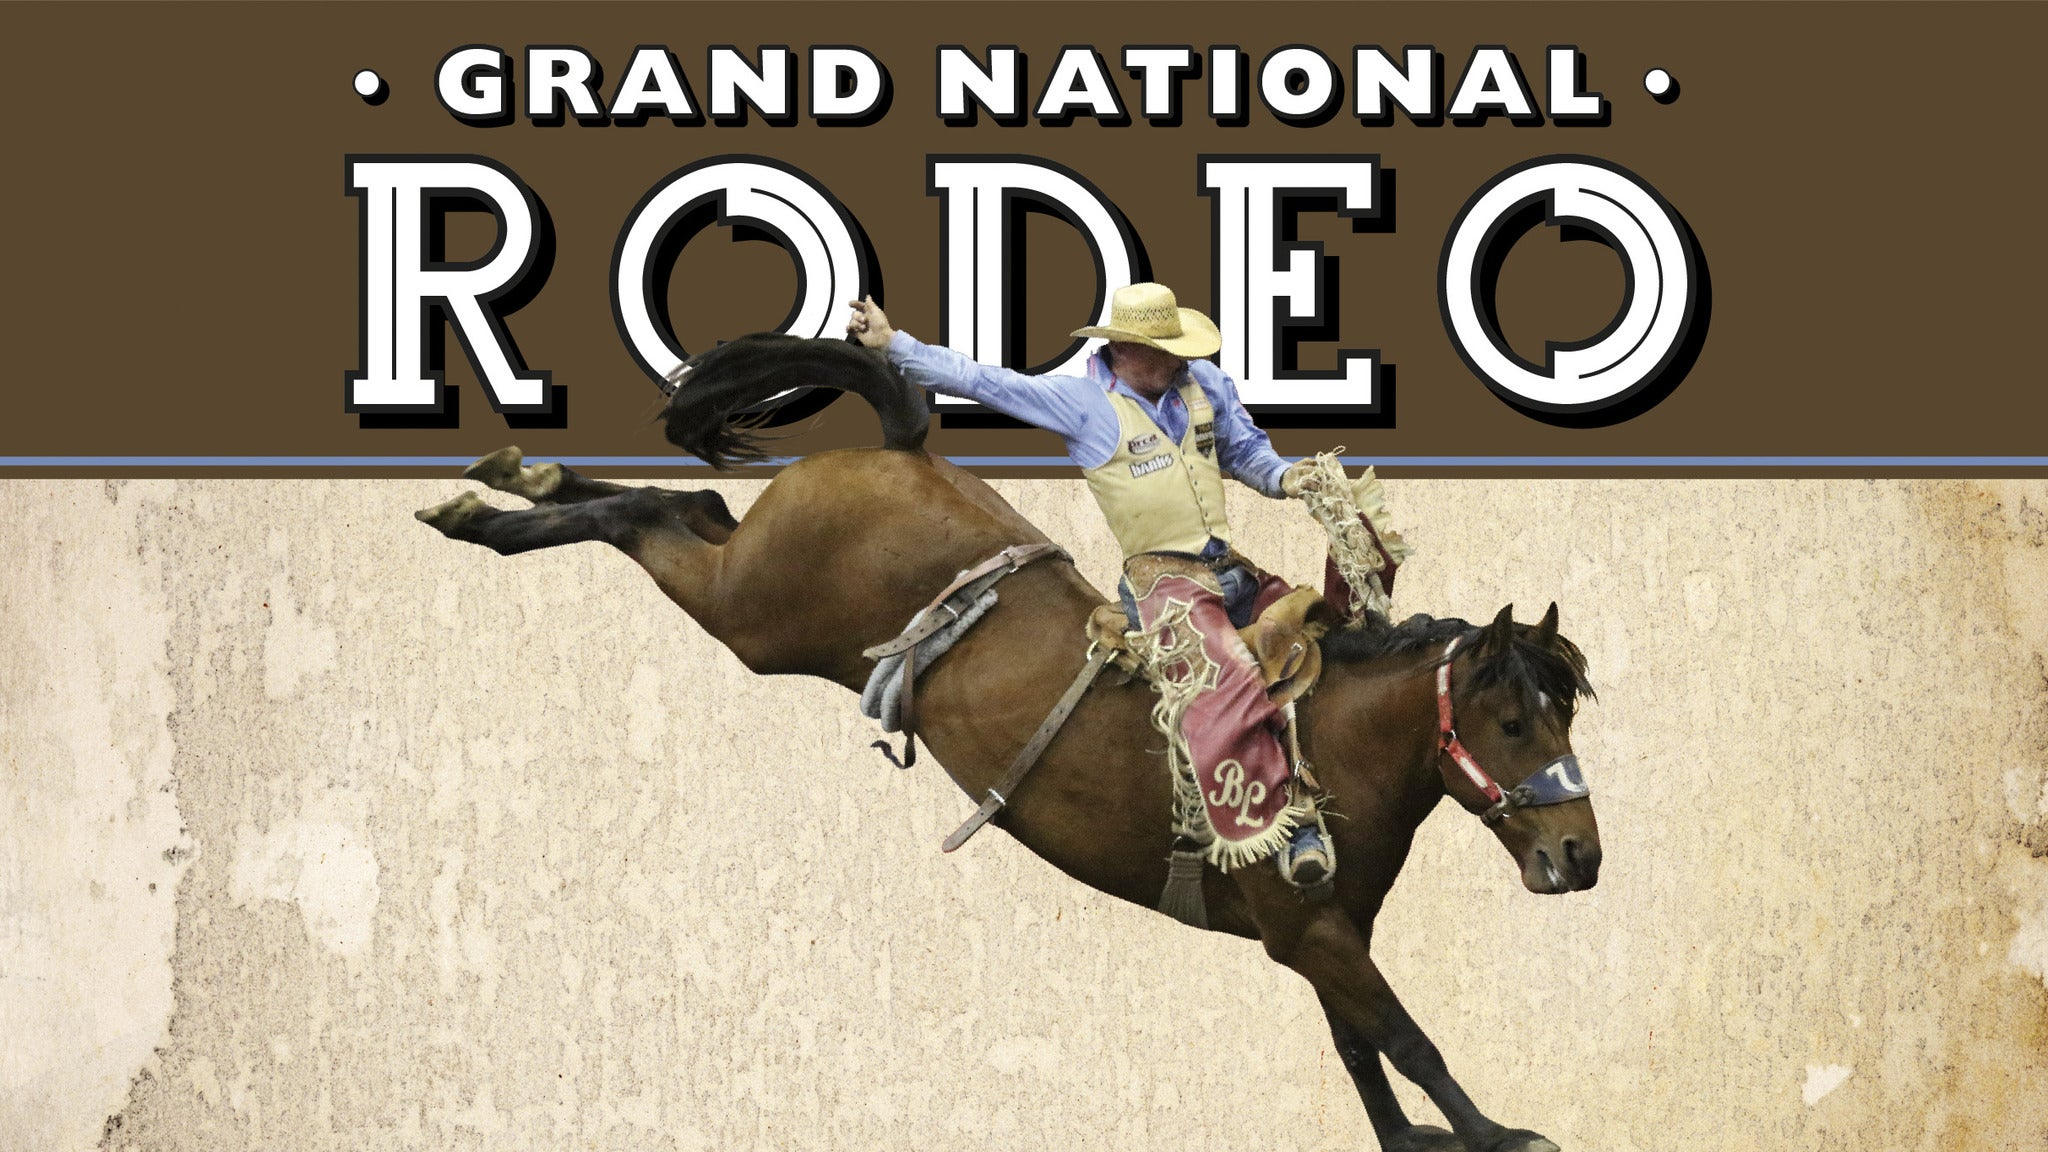 2018 Grand National Rodeo at Cow Palace